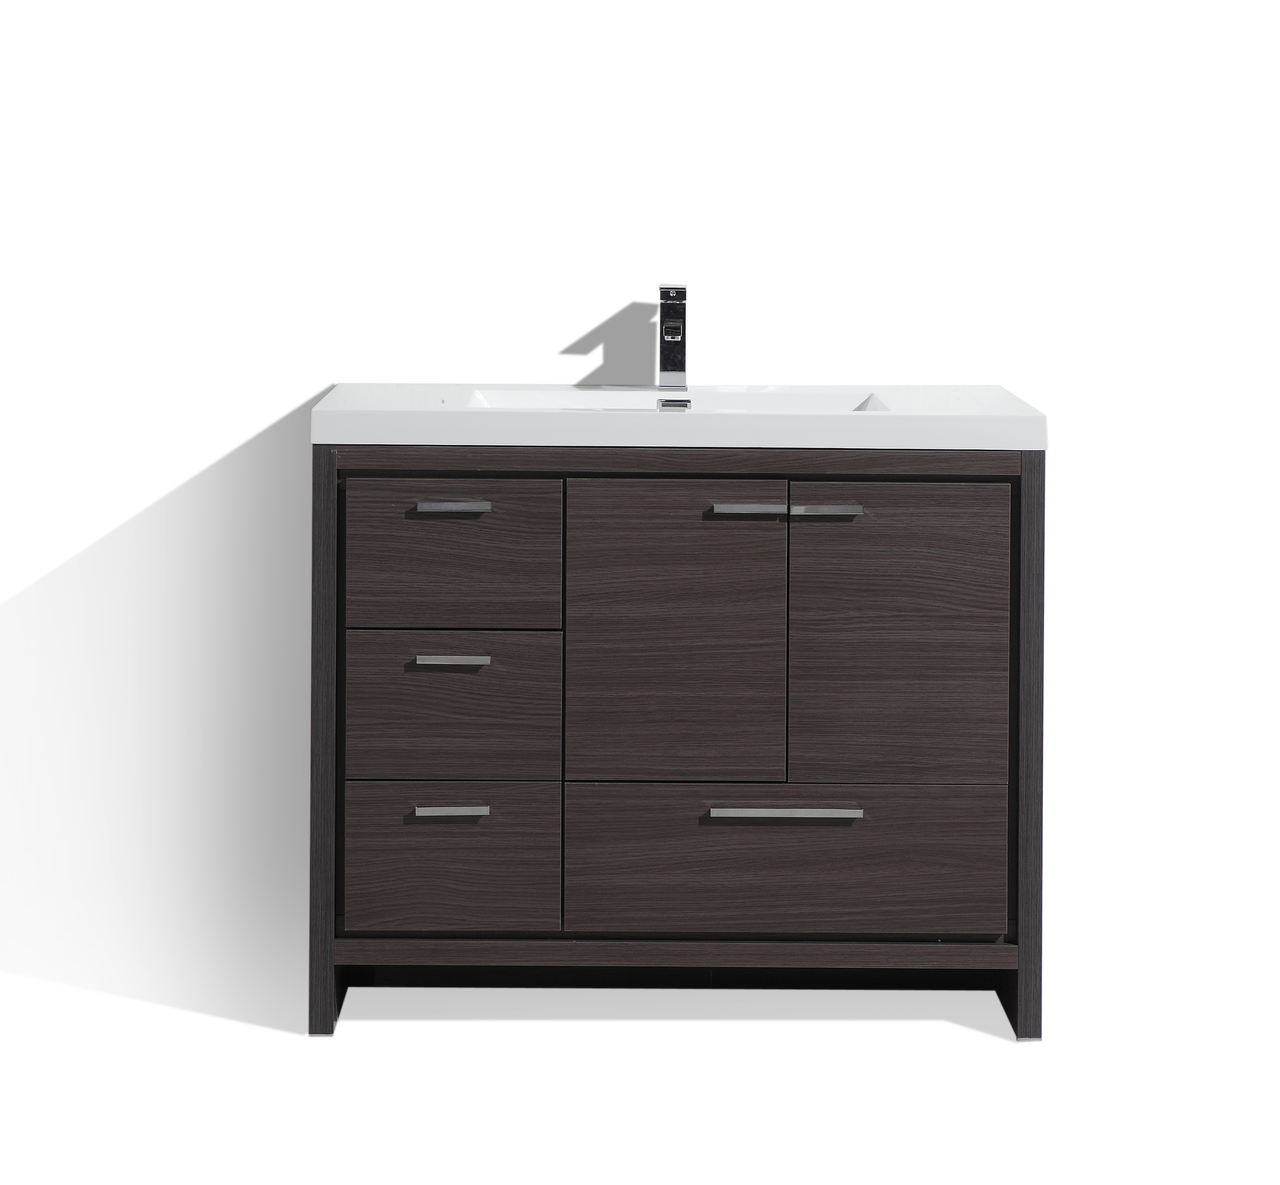 Peachy Moreno Dolce 42 Dark Gray Oak Modern Bathroom Vanity W Left Side Drawers And Acrylic Sink Download Free Architecture Designs Boapuretrmadebymaigaardcom